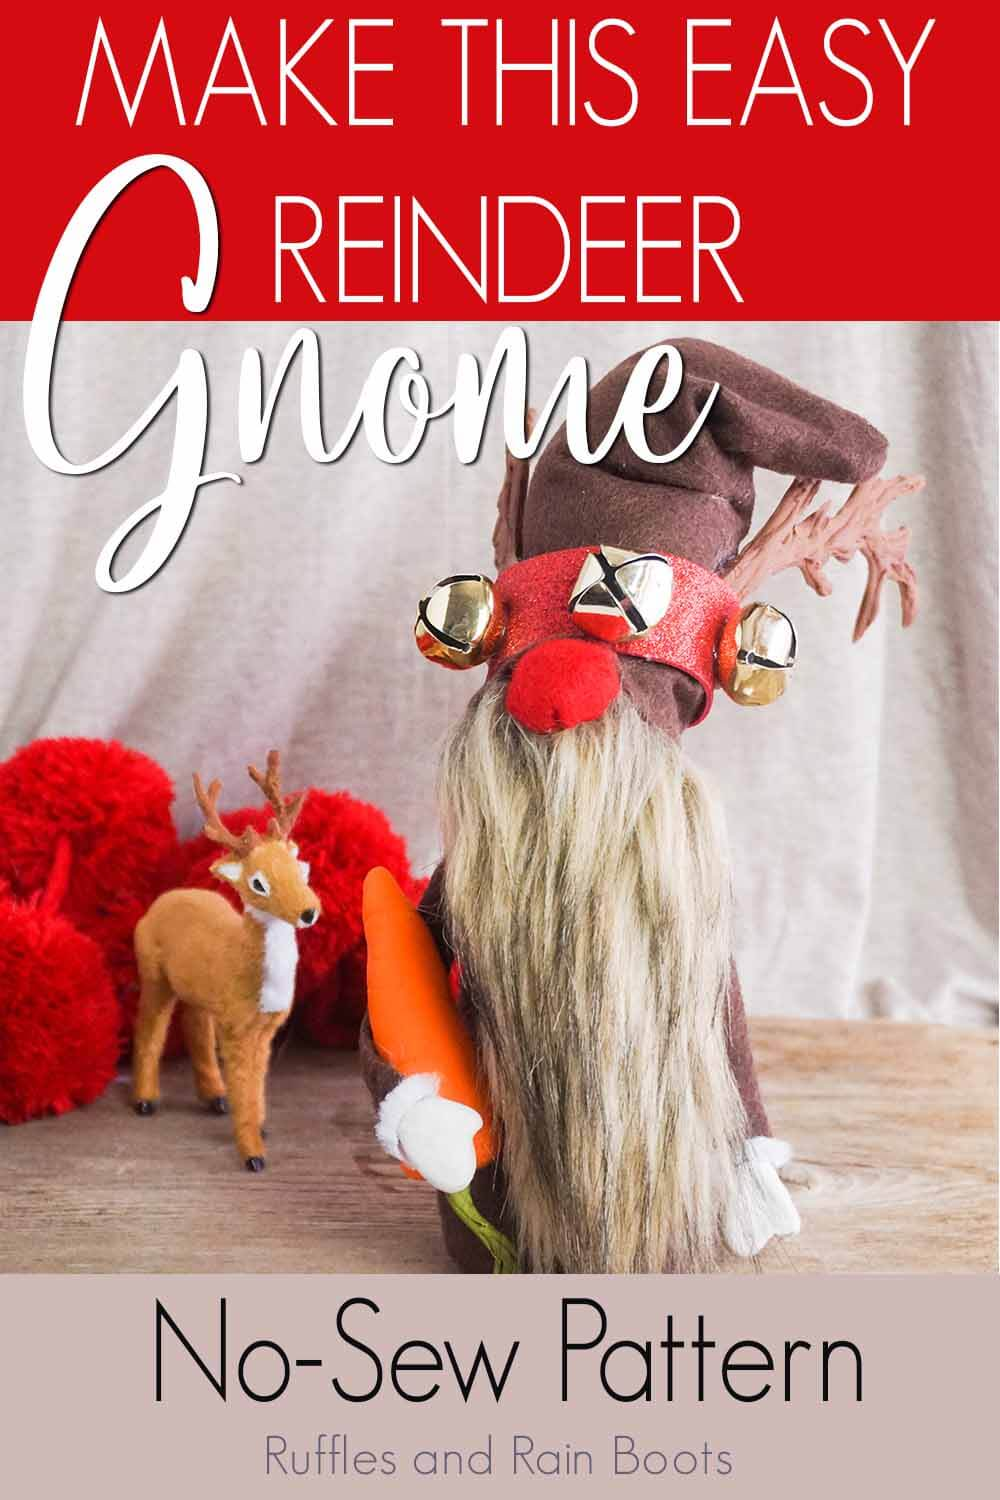 gnome that looks like a reindeer with a tiny deer in the background with text which reads make this easy reindeer gnome no-sew pattern